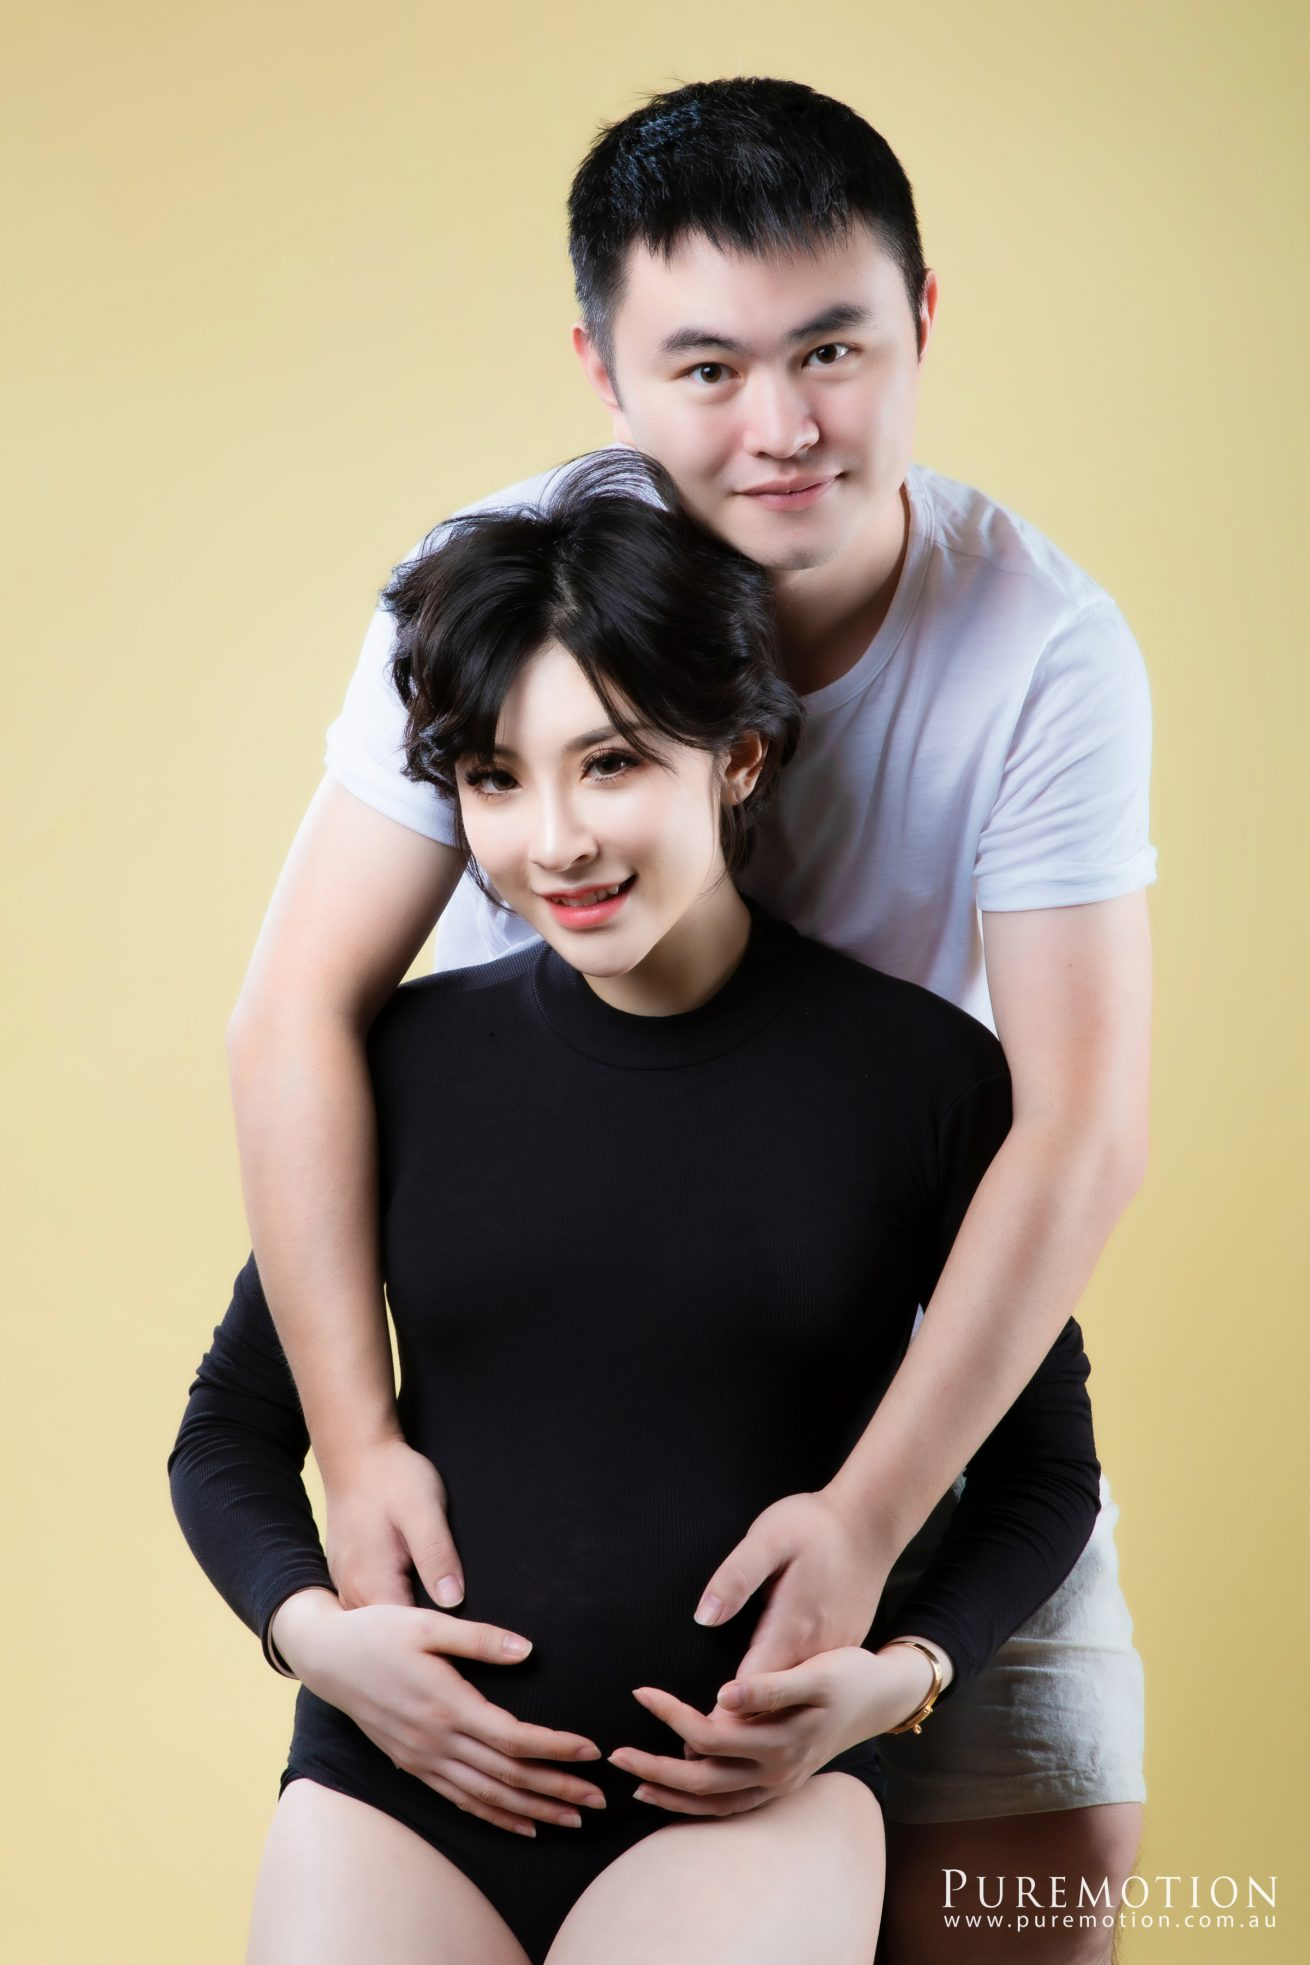 191206 Puremotion Maternity Portrait Photography Alex Huang Brisbane AnanMaternity-0005